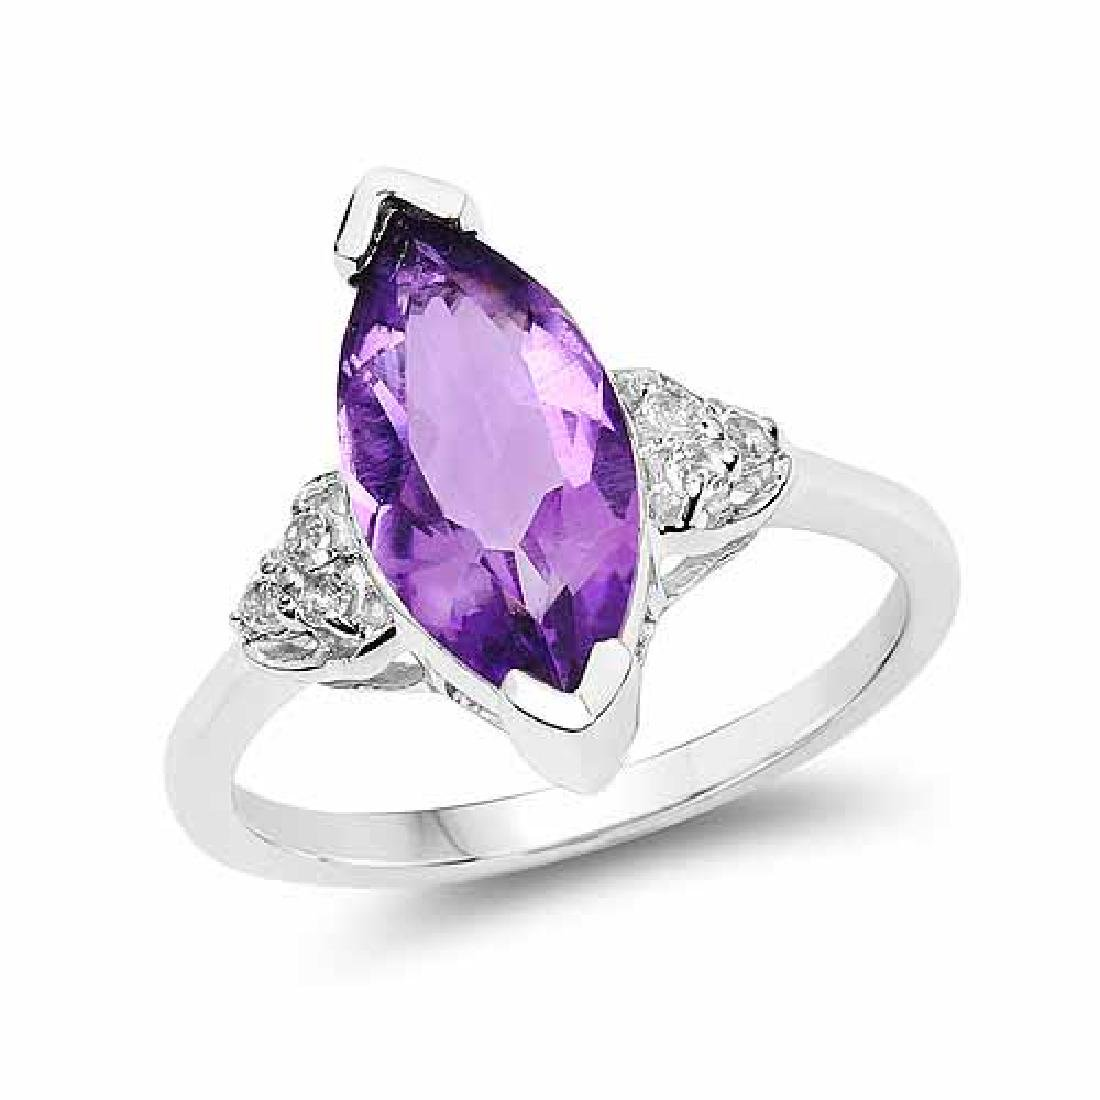 2.66 Carat Genuine Amethyst and White Topaz .925 Sterli